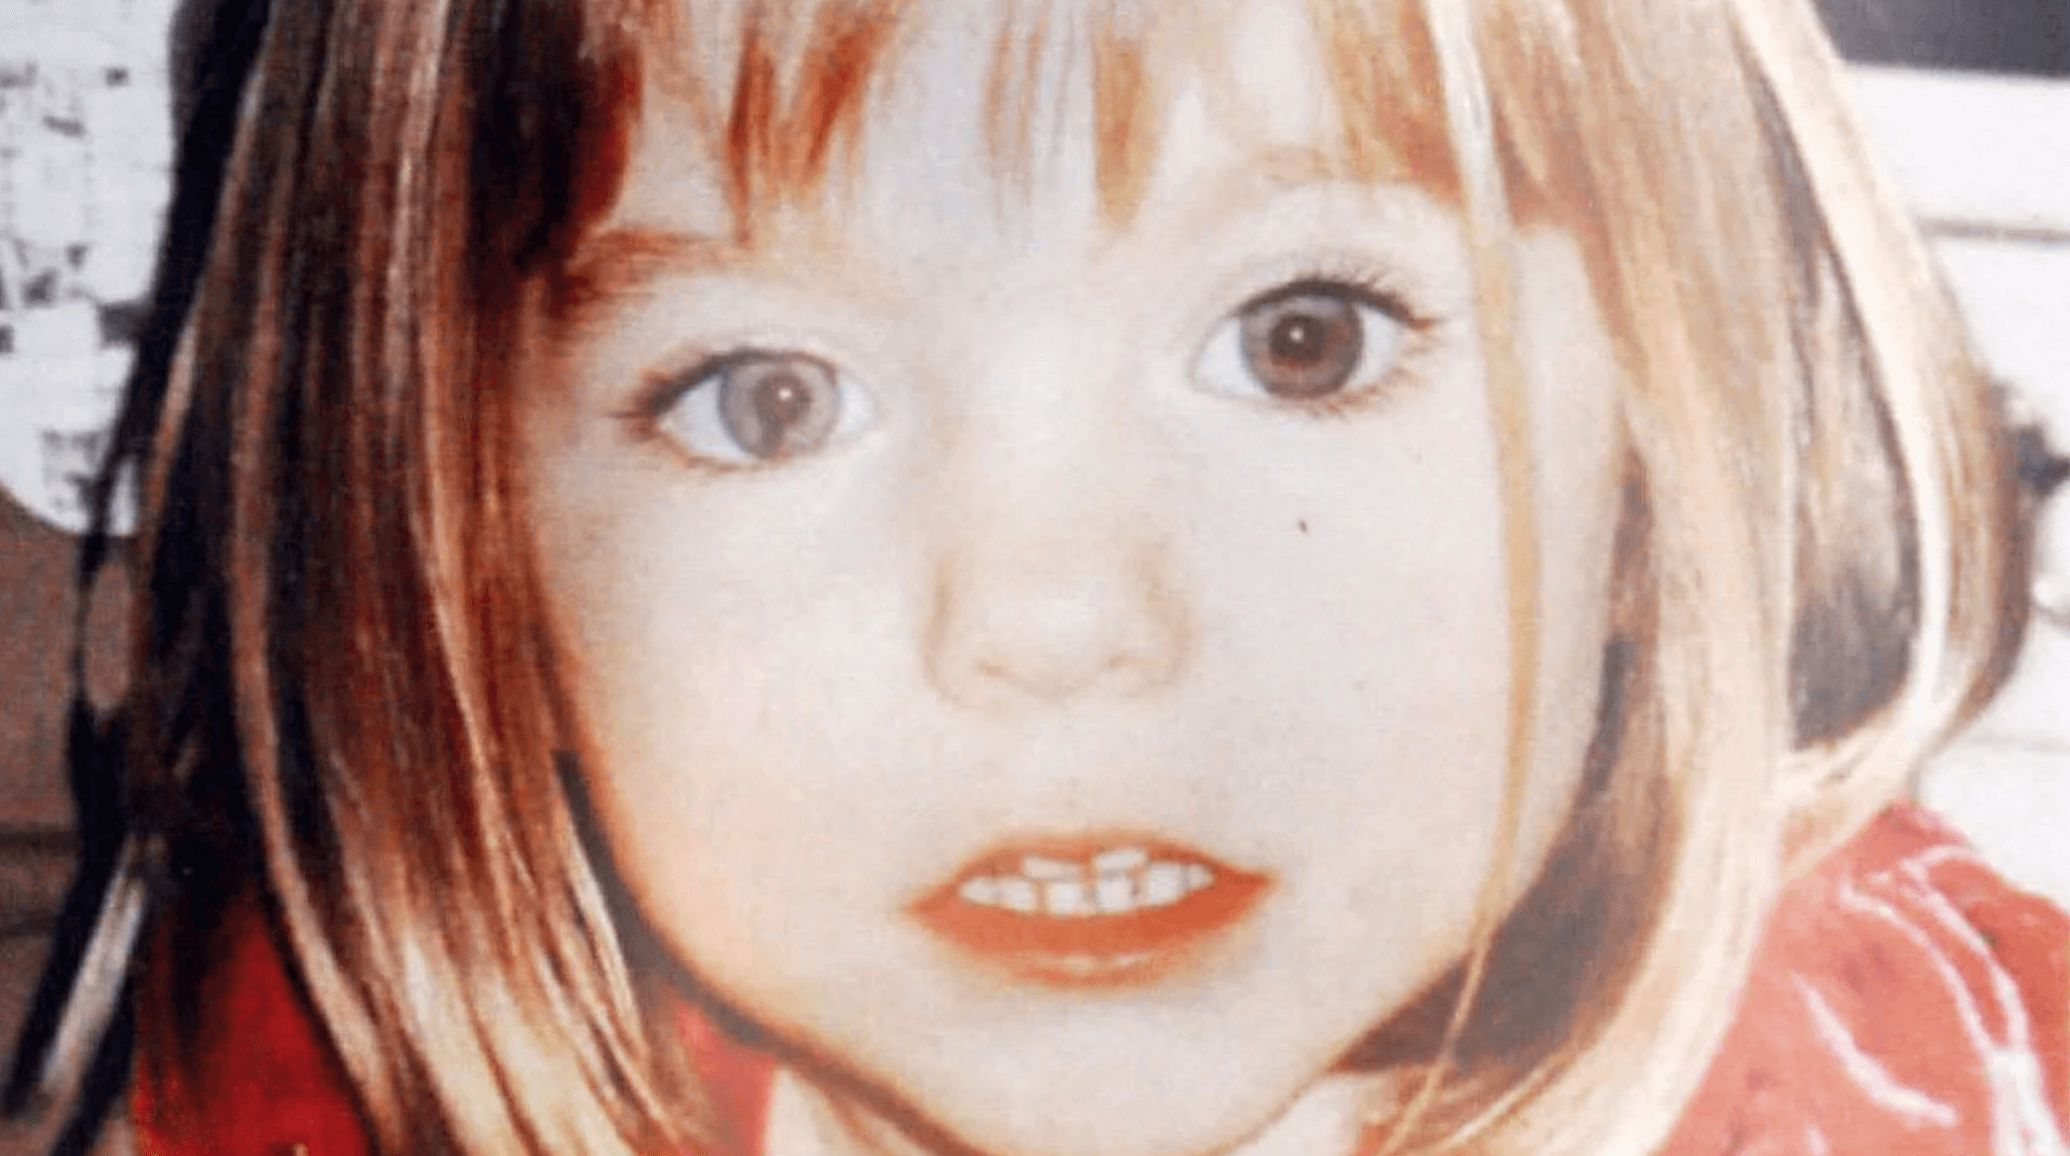 Image may contain: Madeleine McCann reward, fund, Madeleine McCann, the disappearance of Madeleine McCann, Netflix, documentary, money, claim, Girl, Drawing, Art, Portrait, Photo, Photography, Outdoors, Smile, Female, Head, Person, Human, Face